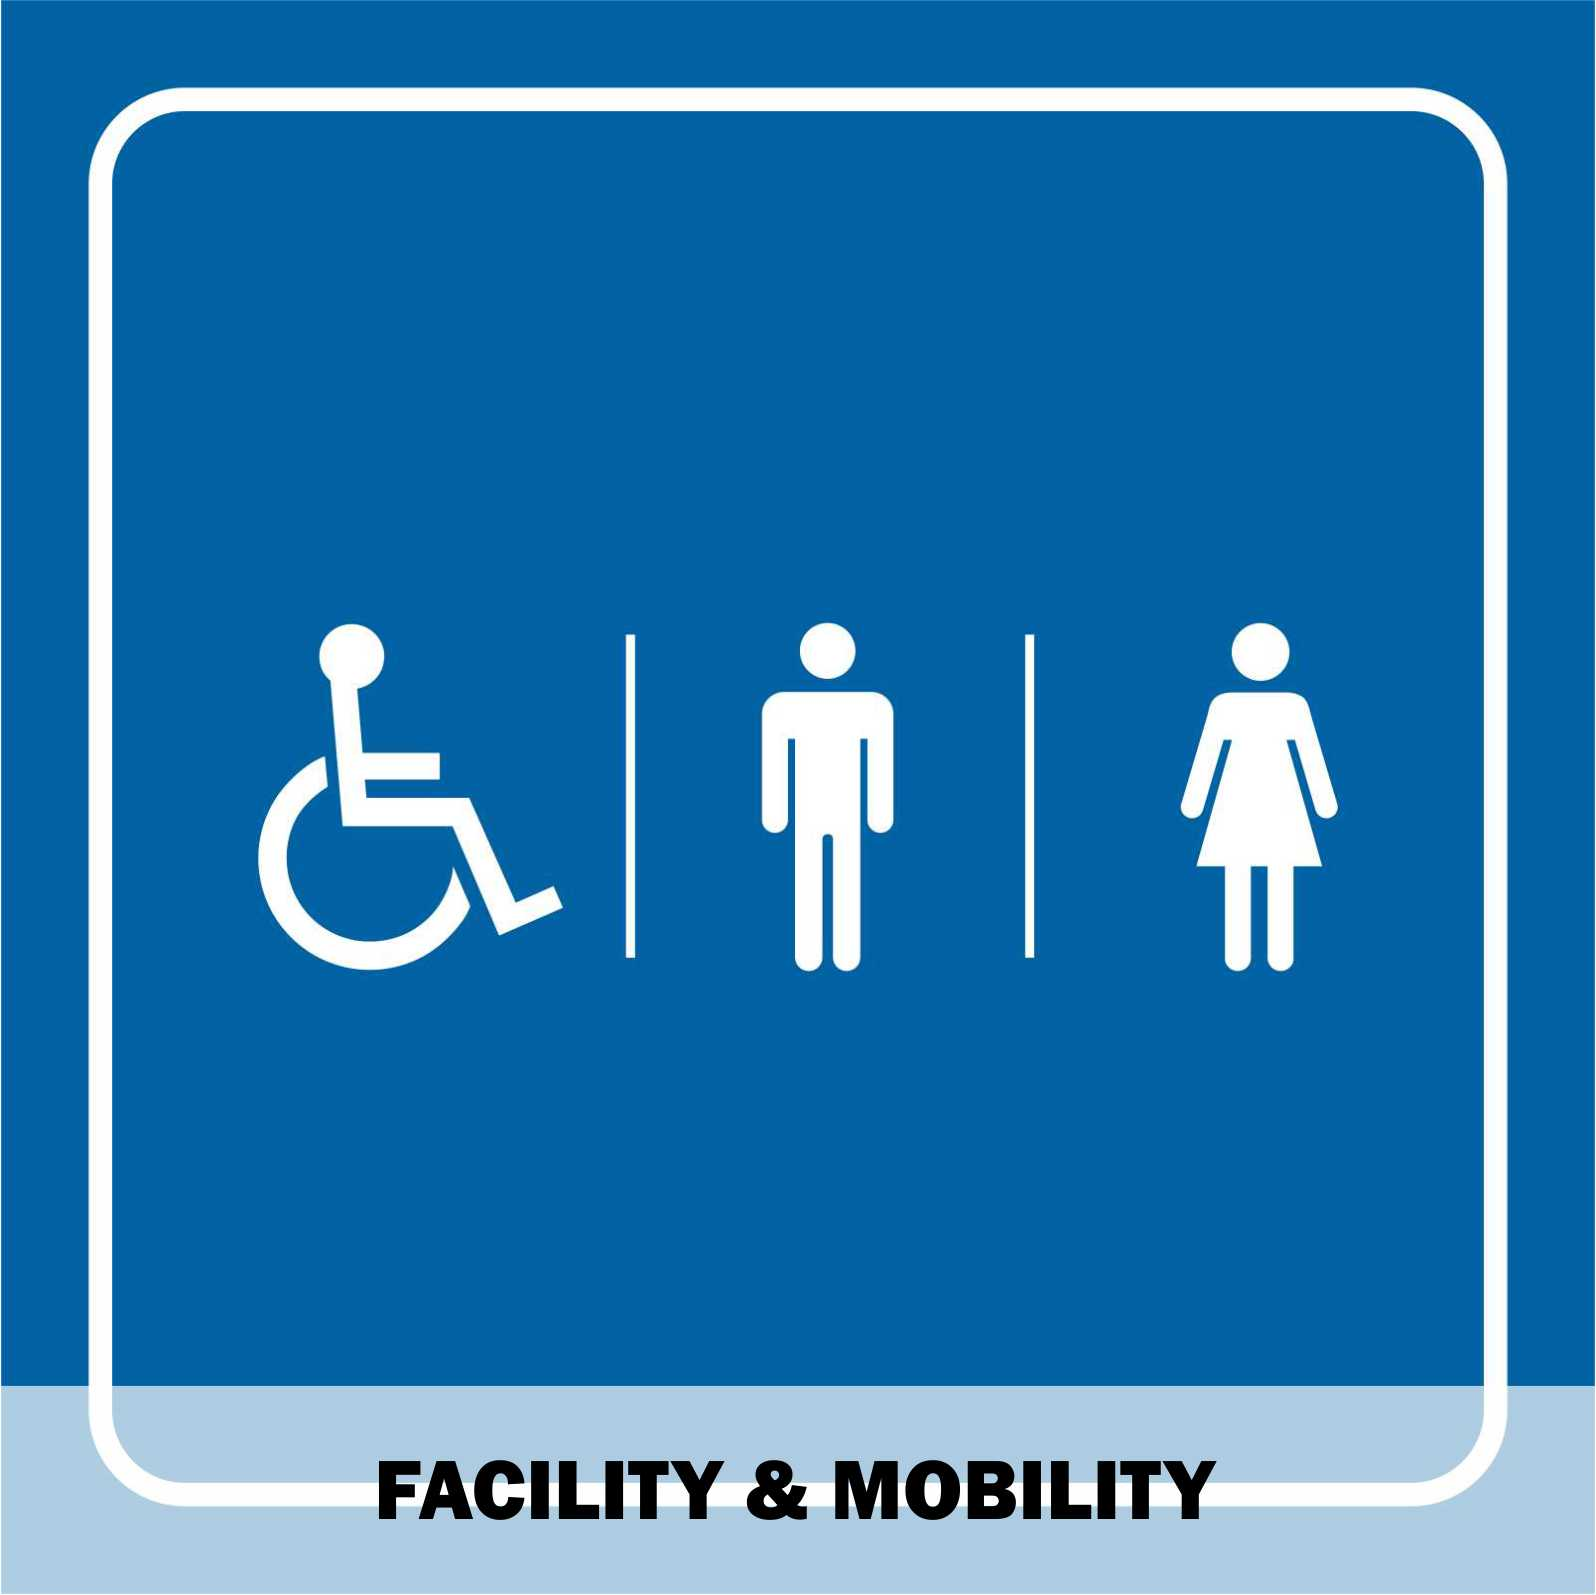 Facility & Mobility